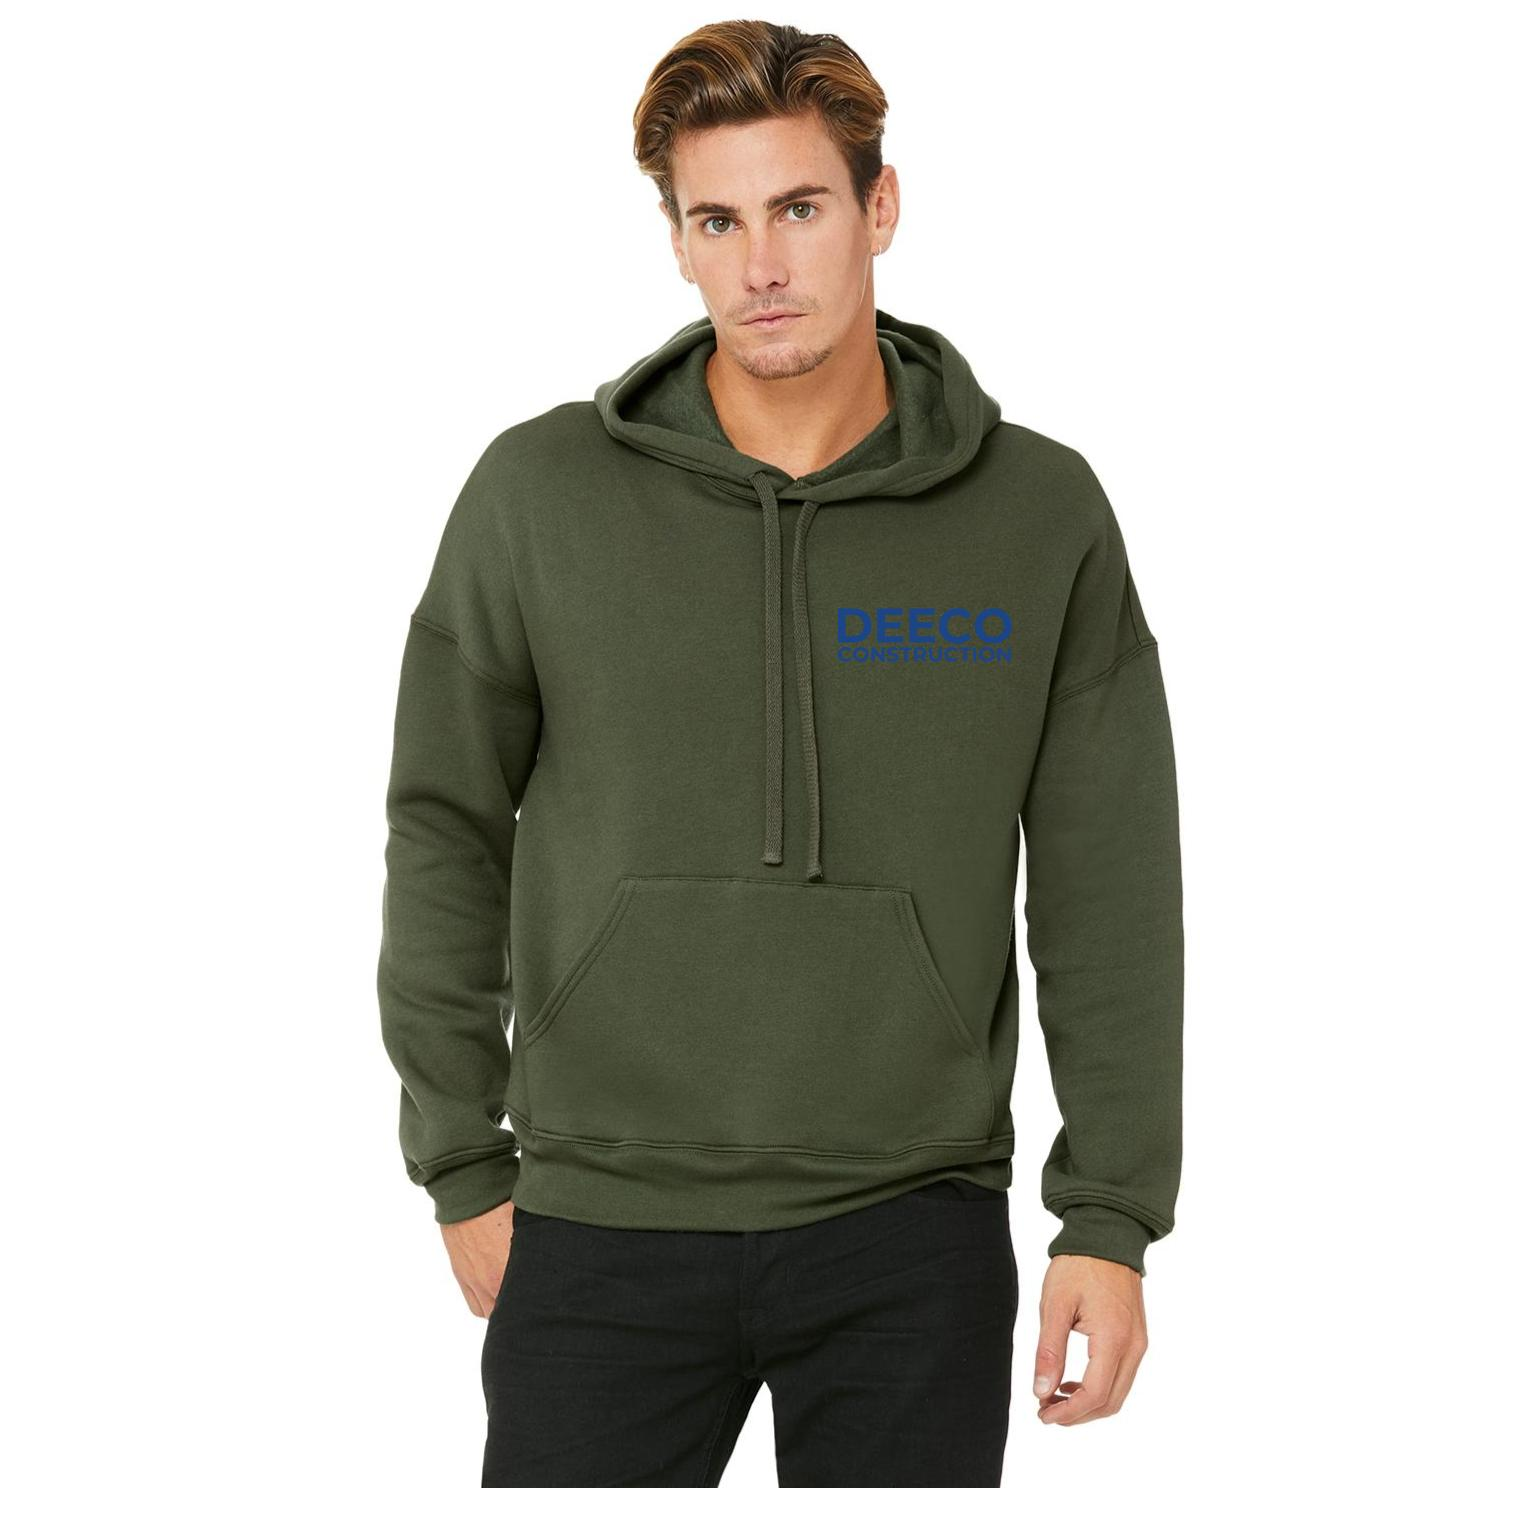 hoodie merch - military green navy text front.jpg